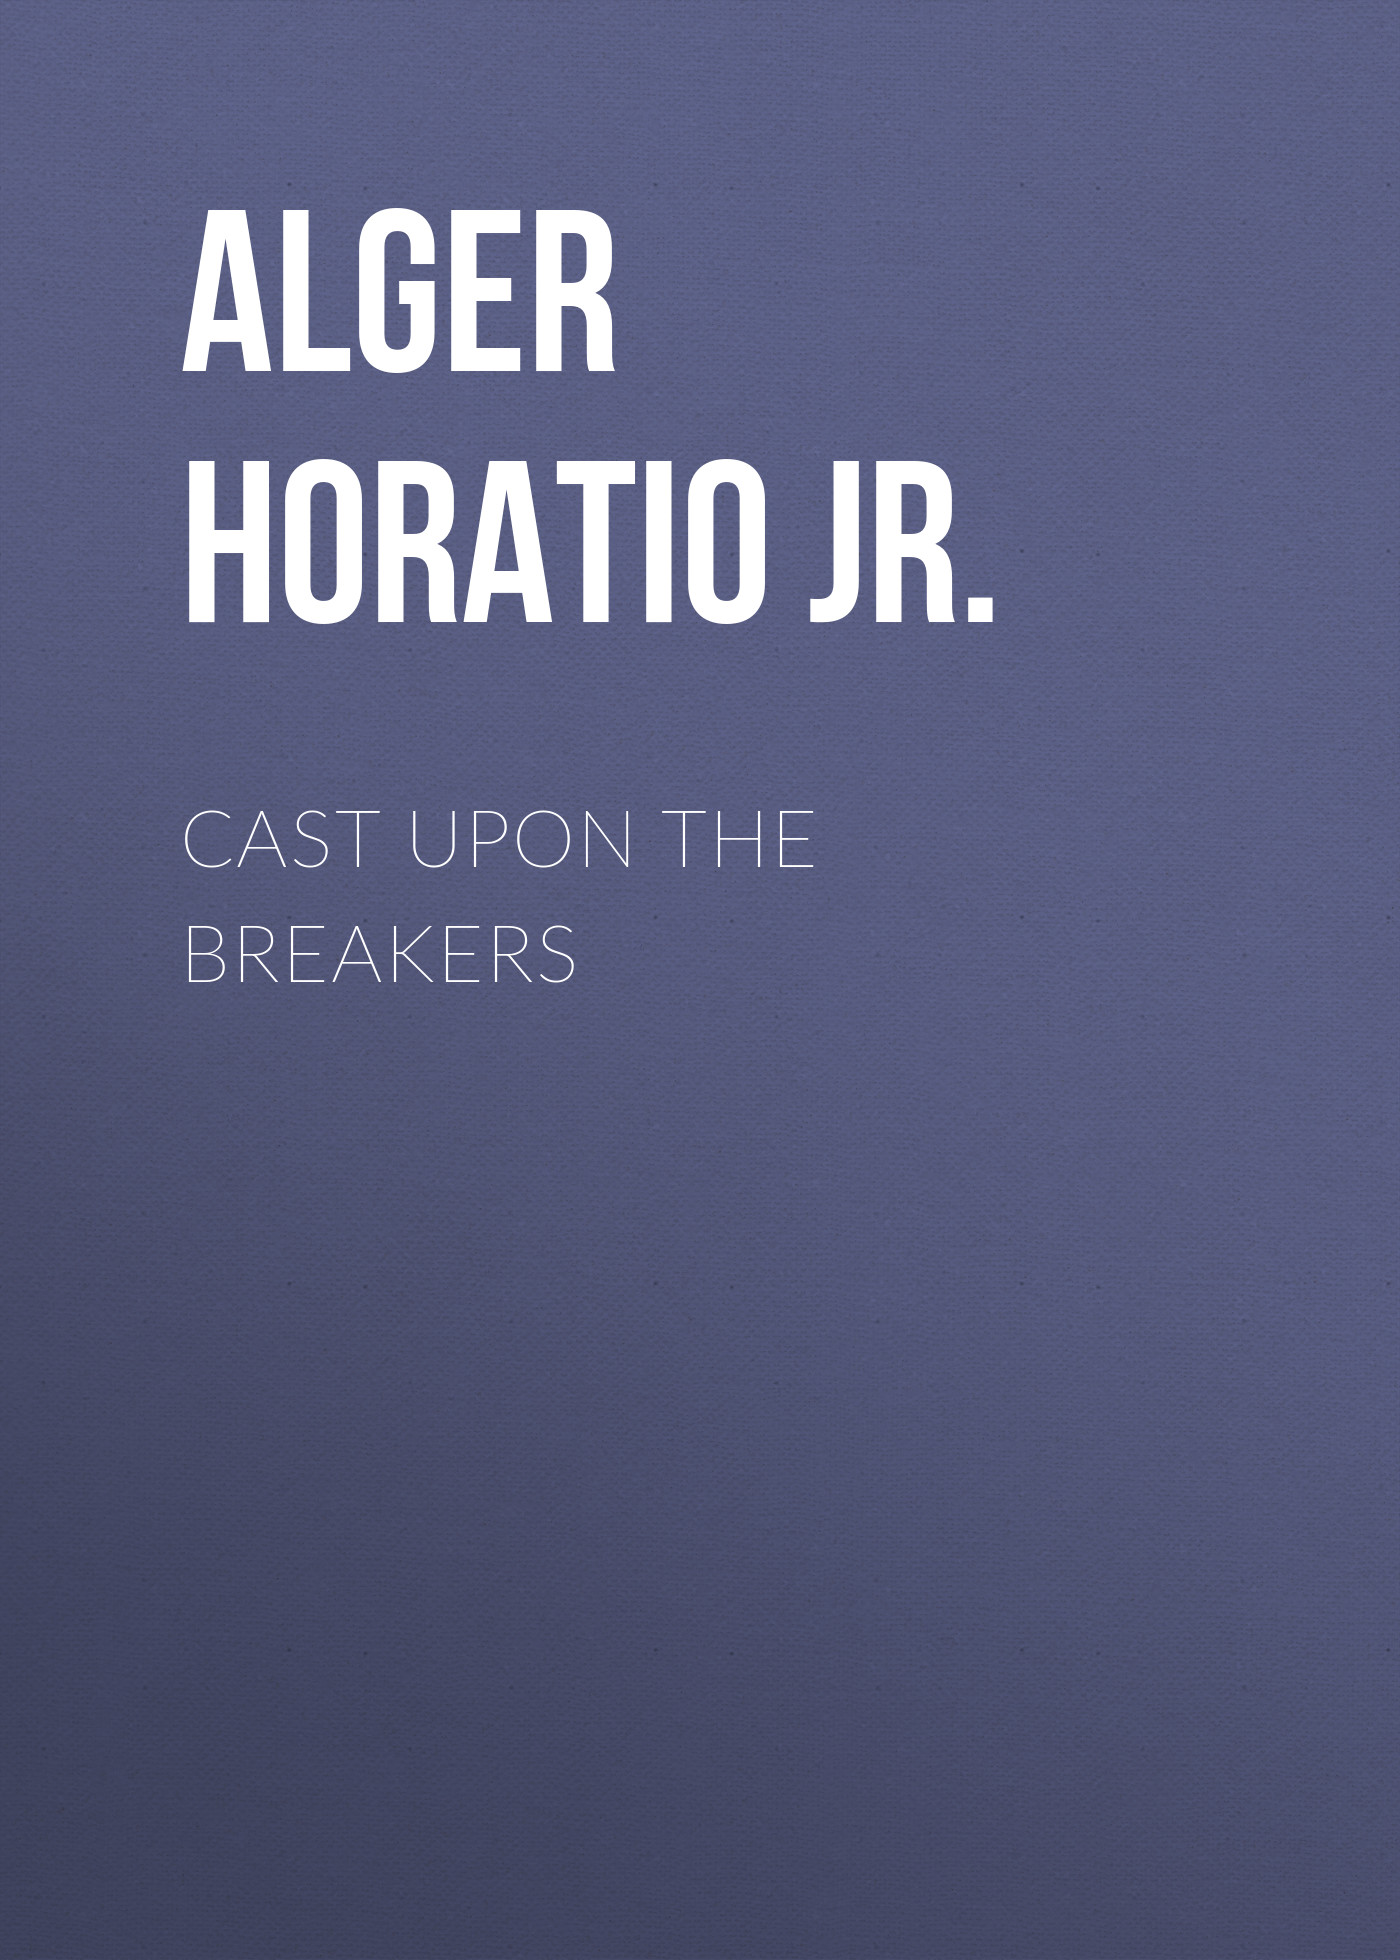 лучшая цена Alger Horatio Jr. Cast Upon the Breakers